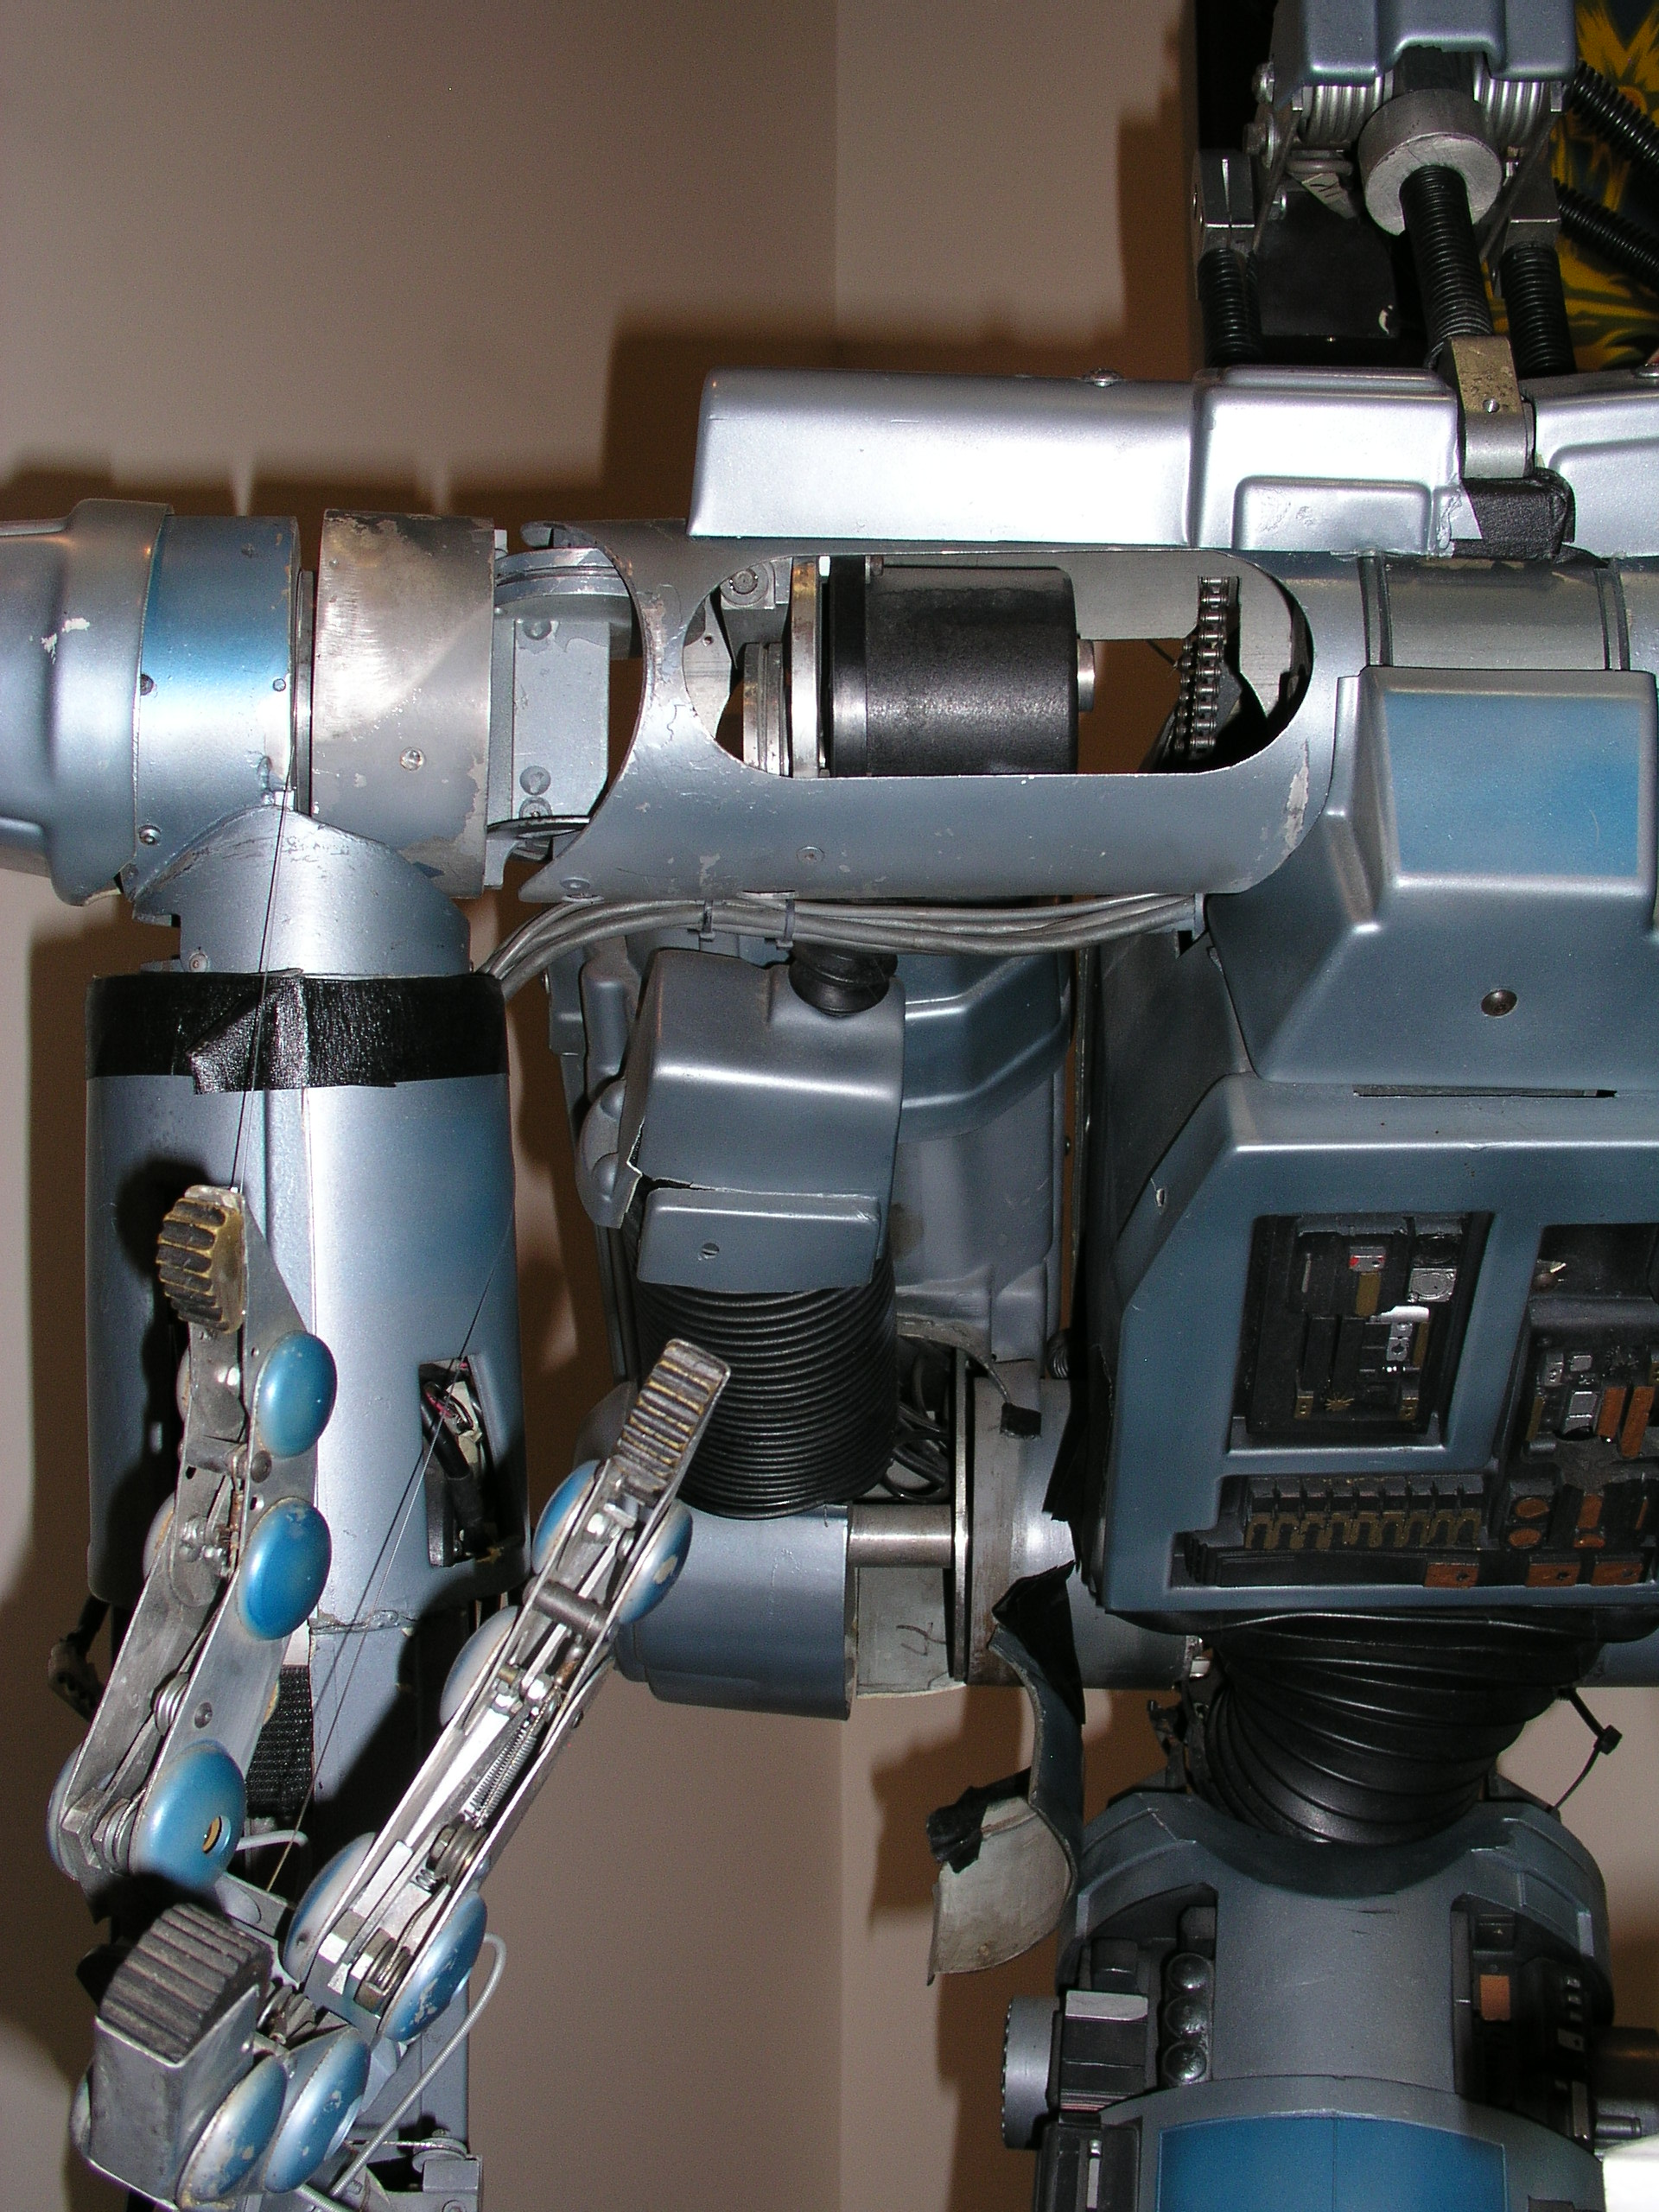 Short Circuit Robot In Museum Wiring And Diagram Hub Robots Johnny 5 Number From Arms Electric